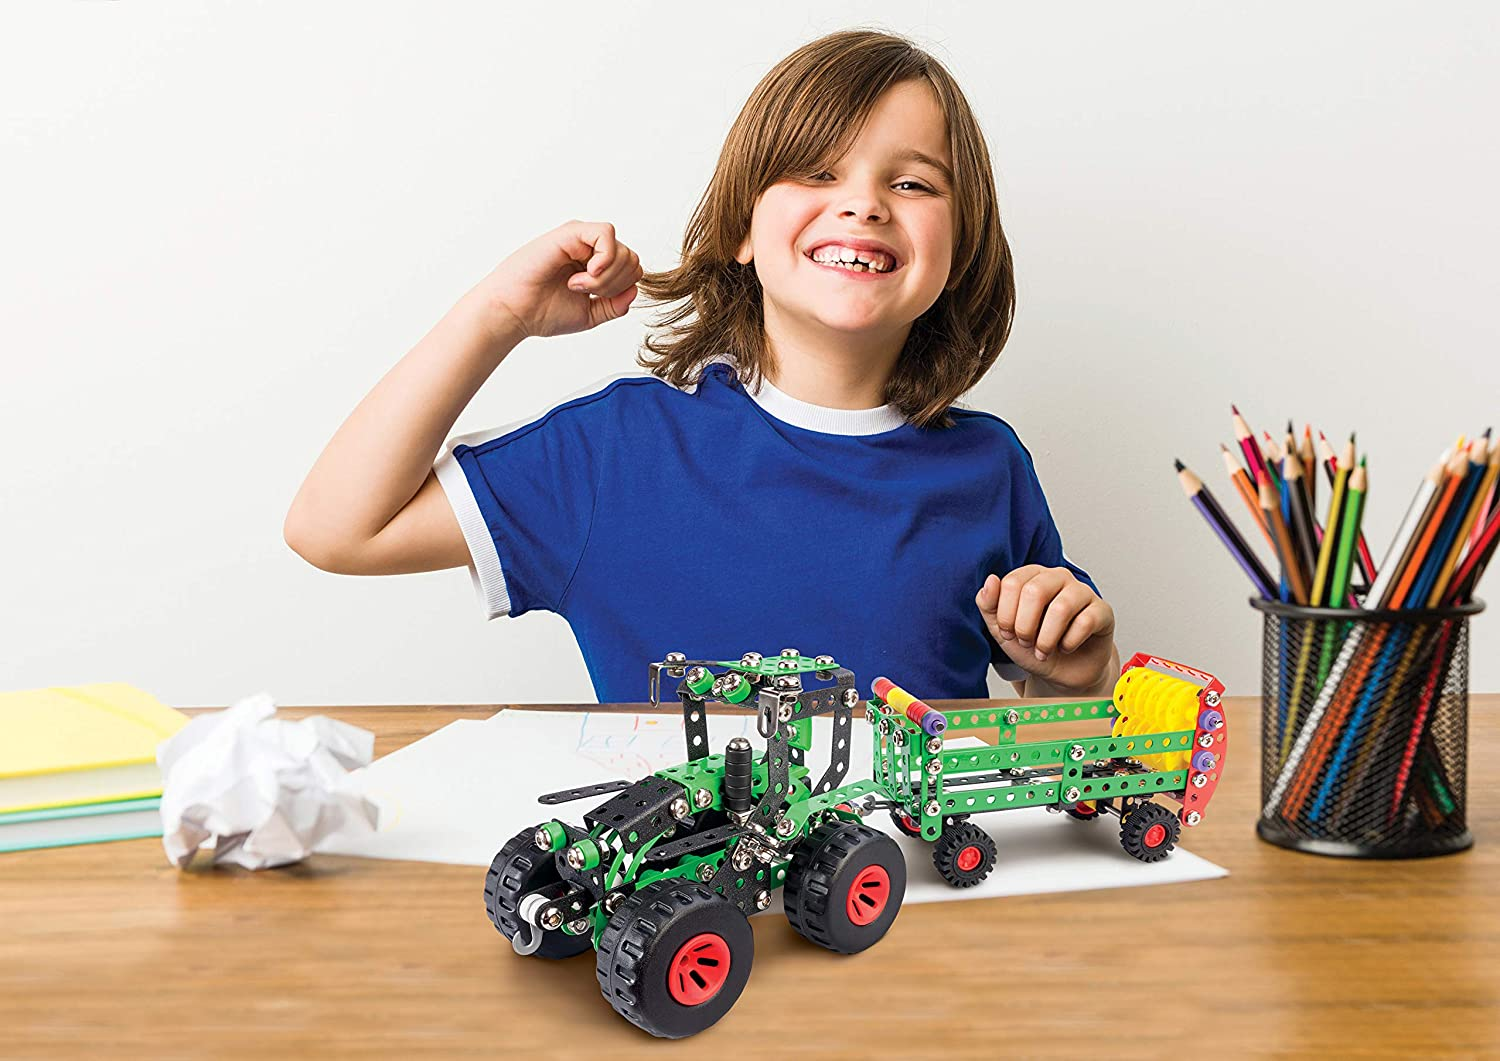 Alexander Toys Constructor Fred /& Stinky Tractor /& Manure Spreader Pure Metal Construction Model Building Kits Fully Compatible with Erector and All Other Metal Construction Sets and STEM Toys